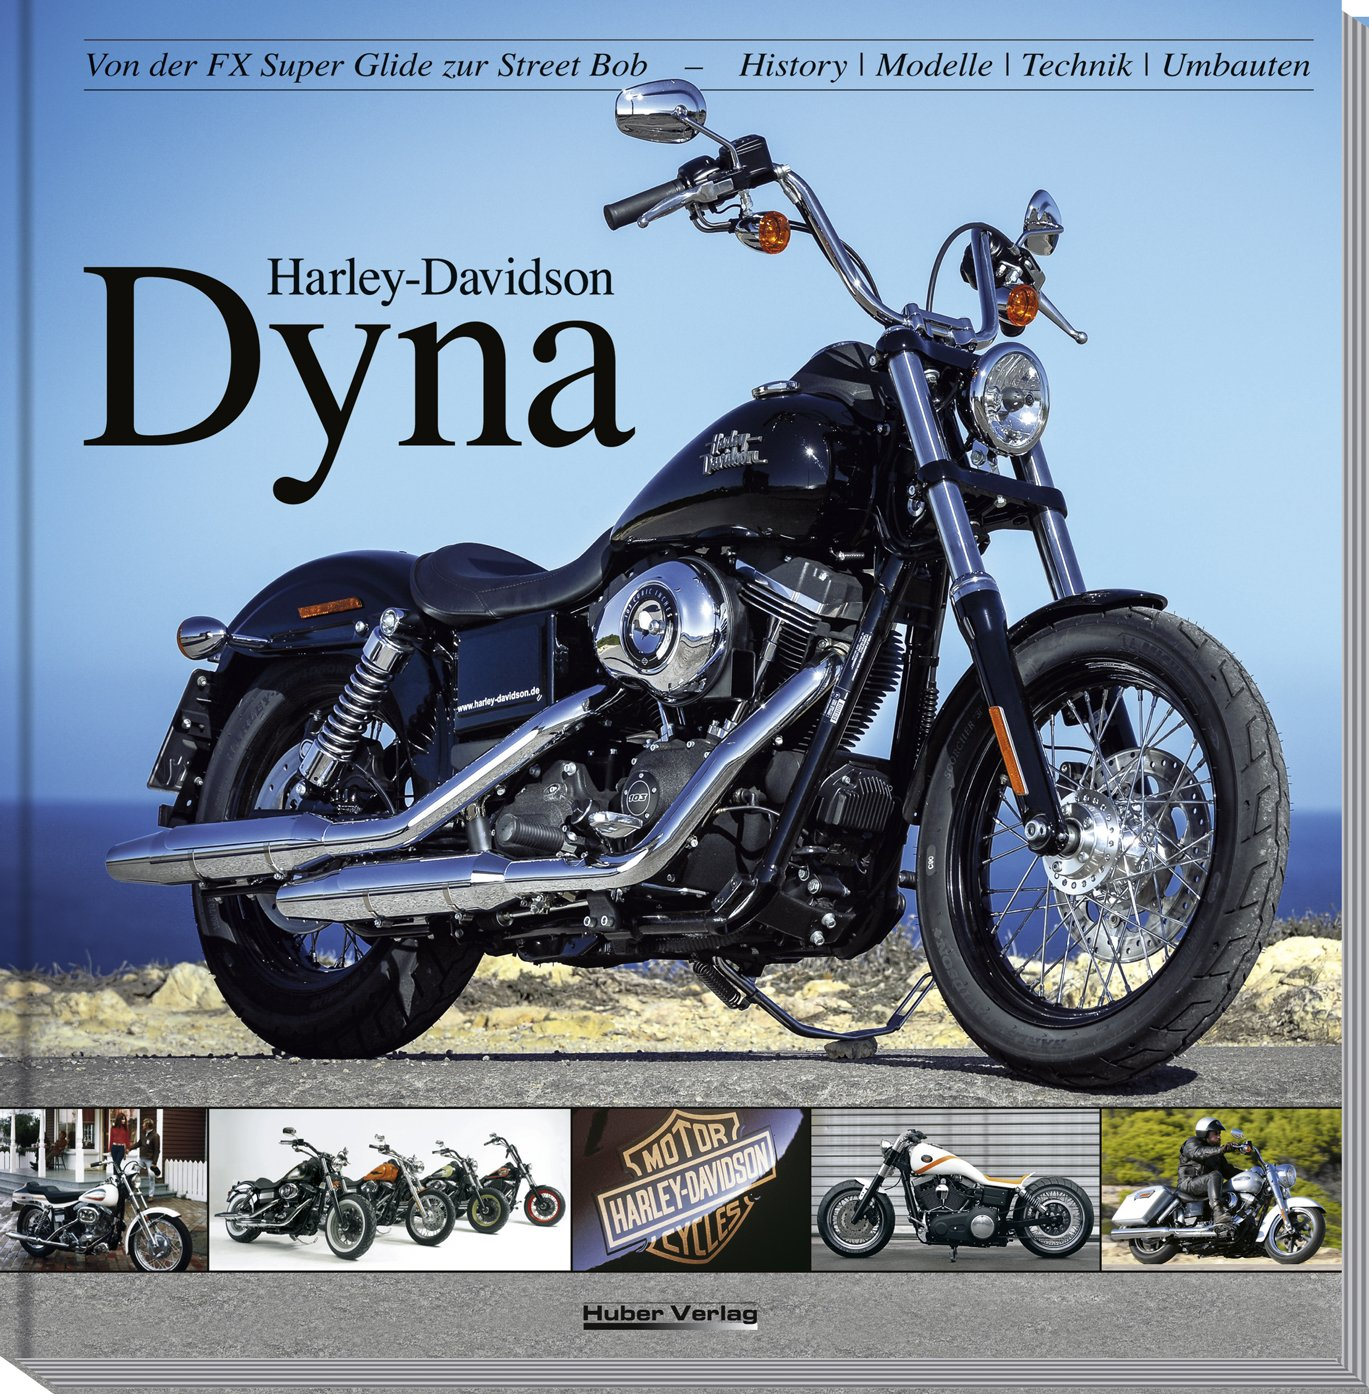 isbn 9783927896581 harley davidson dyna von der fx. Black Bedroom Furniture Sets. Home Design Ideas